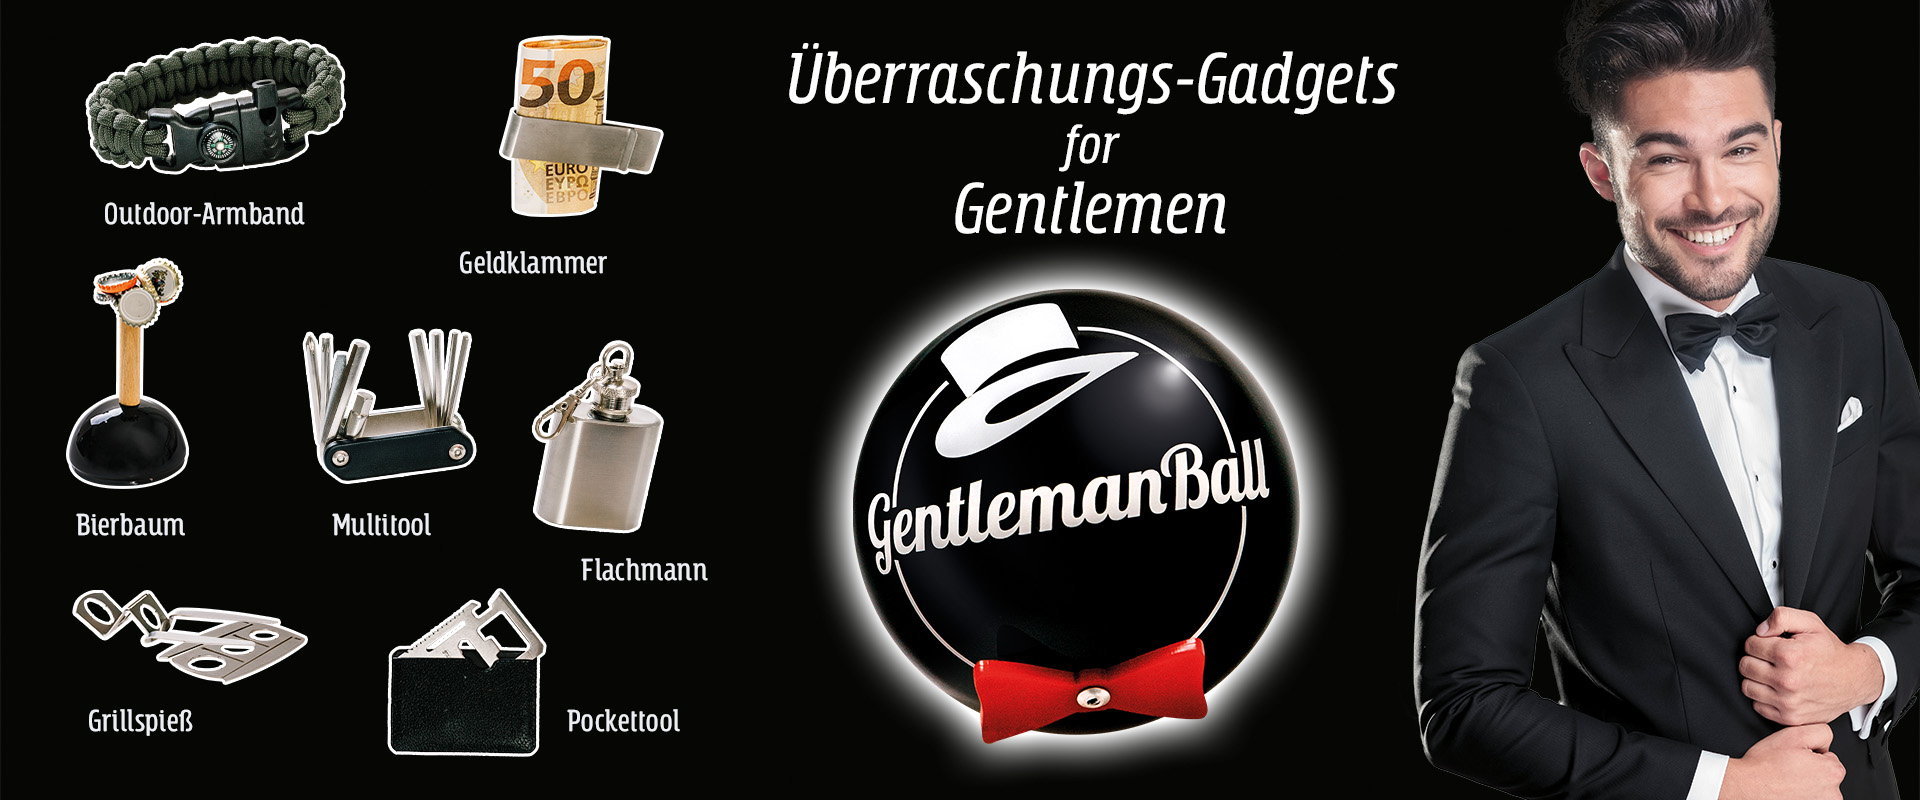 Gentleman Ball Header